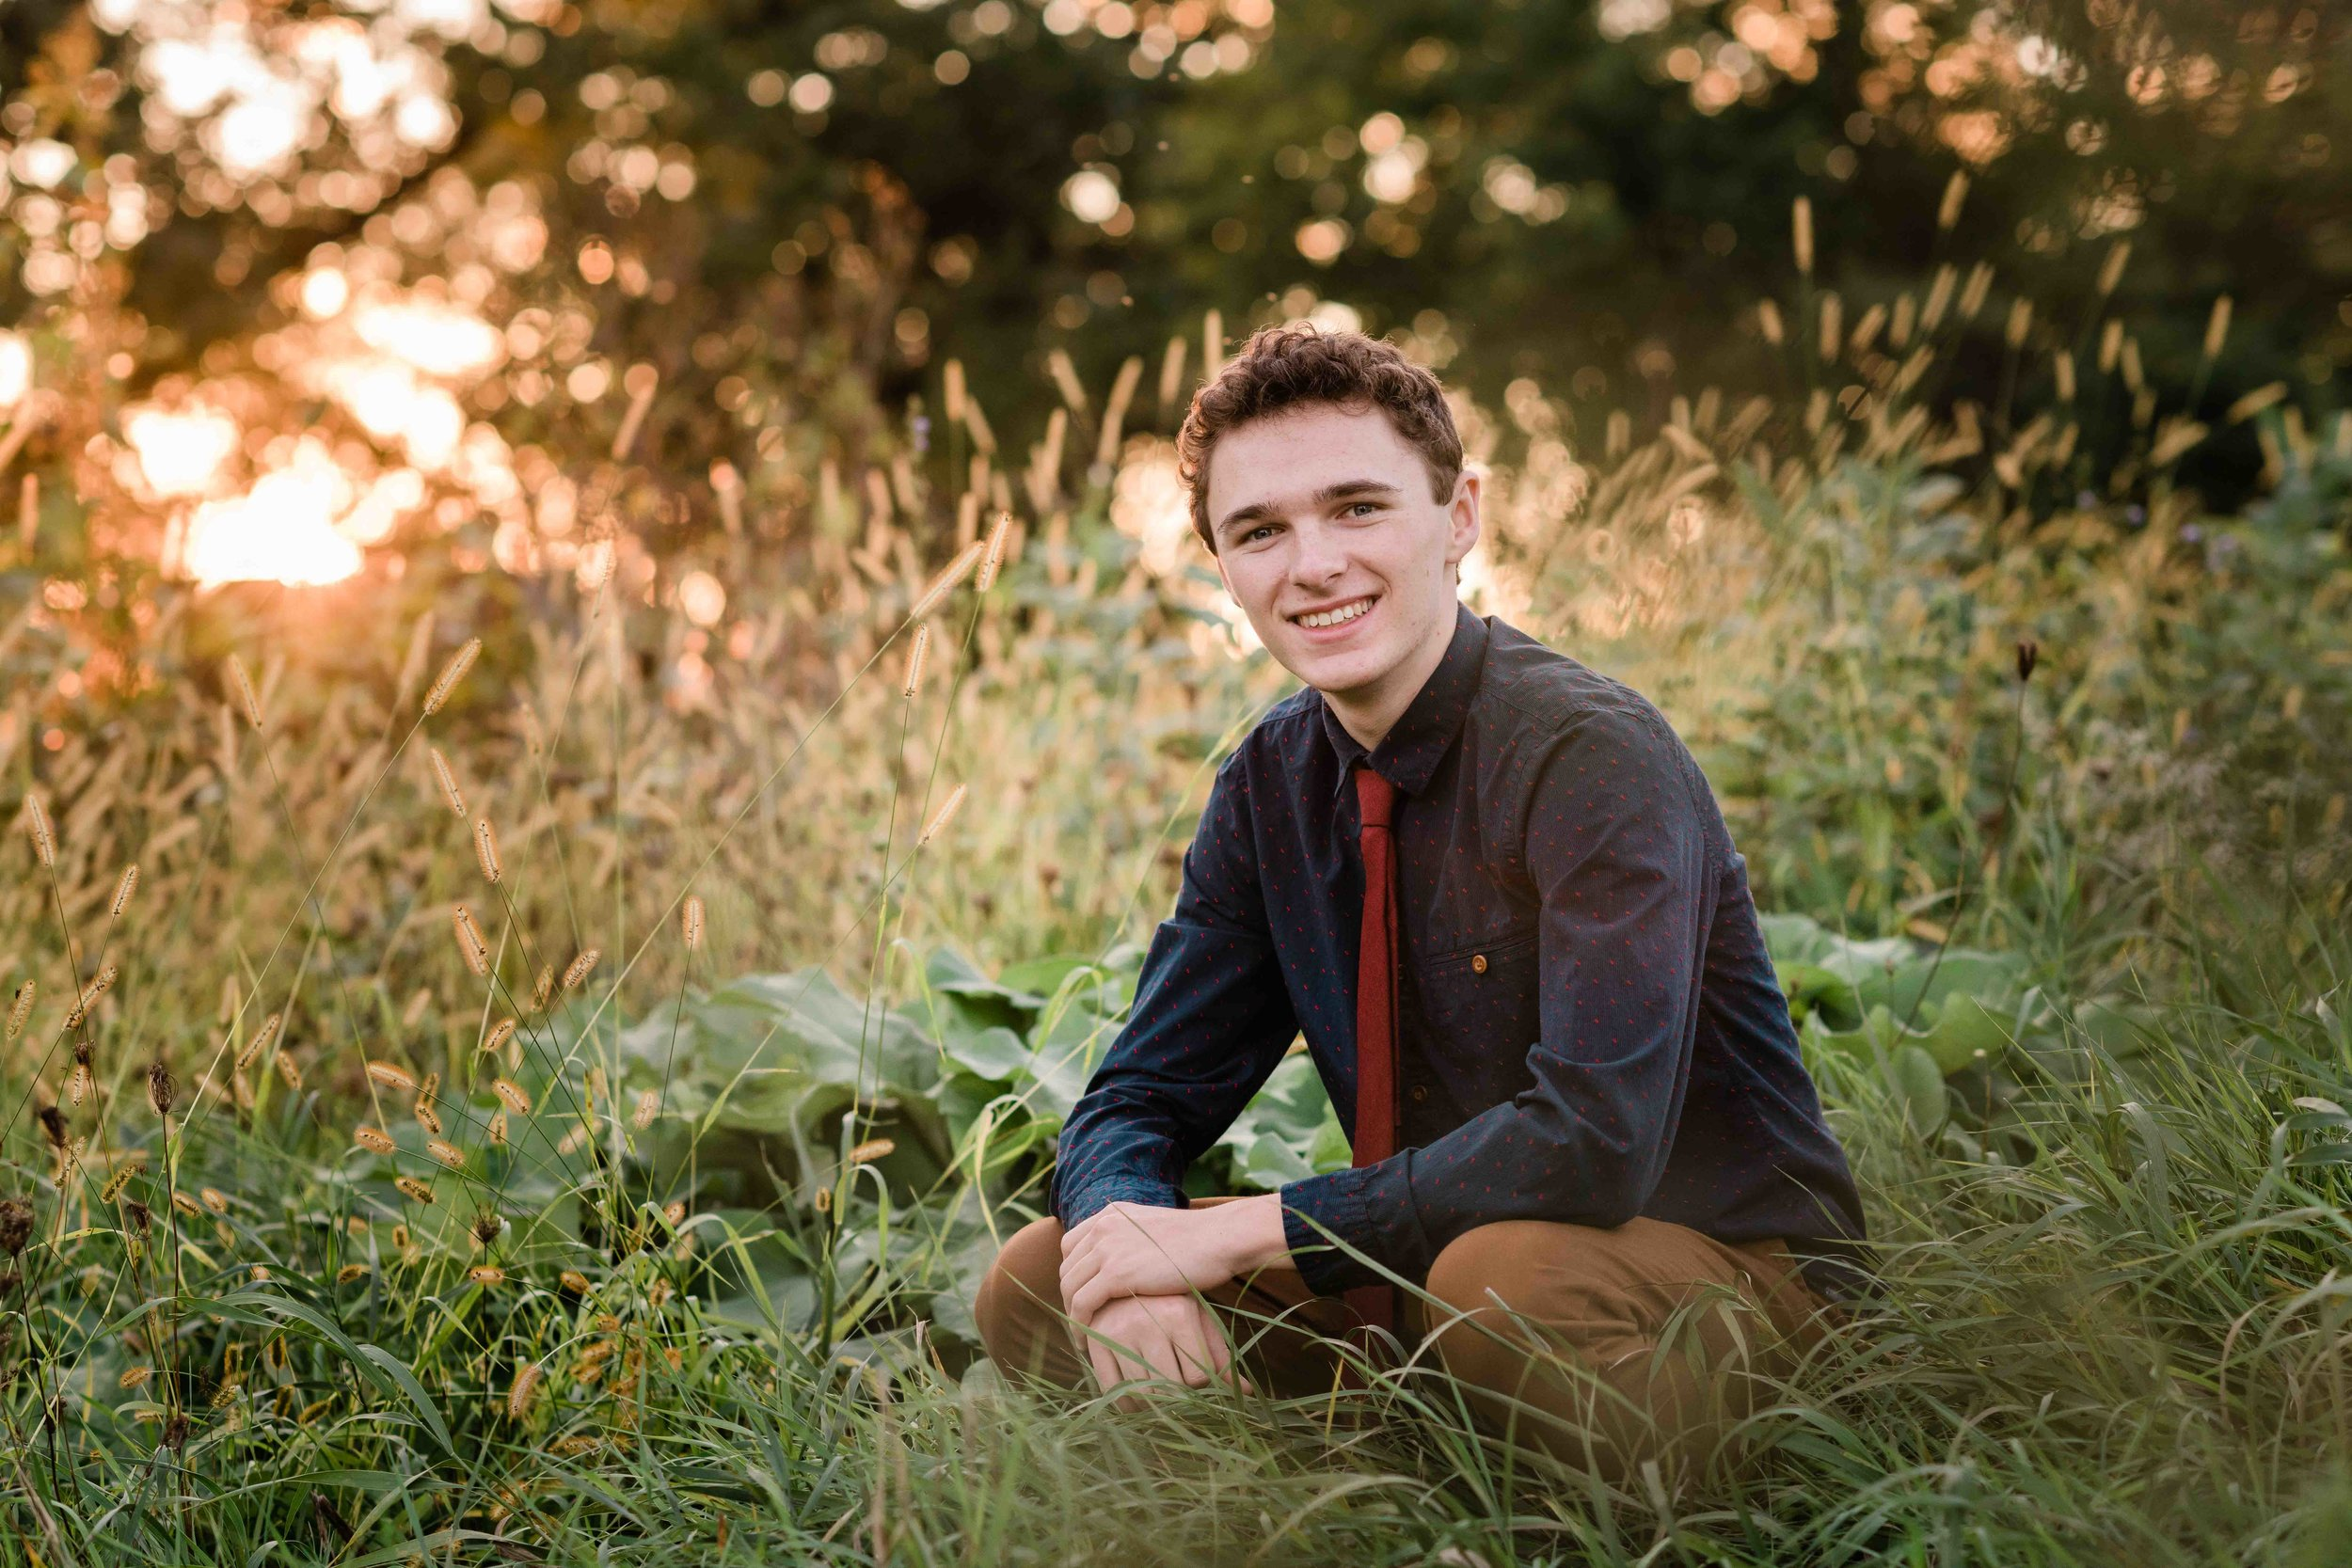 High school senior sitting in a garden